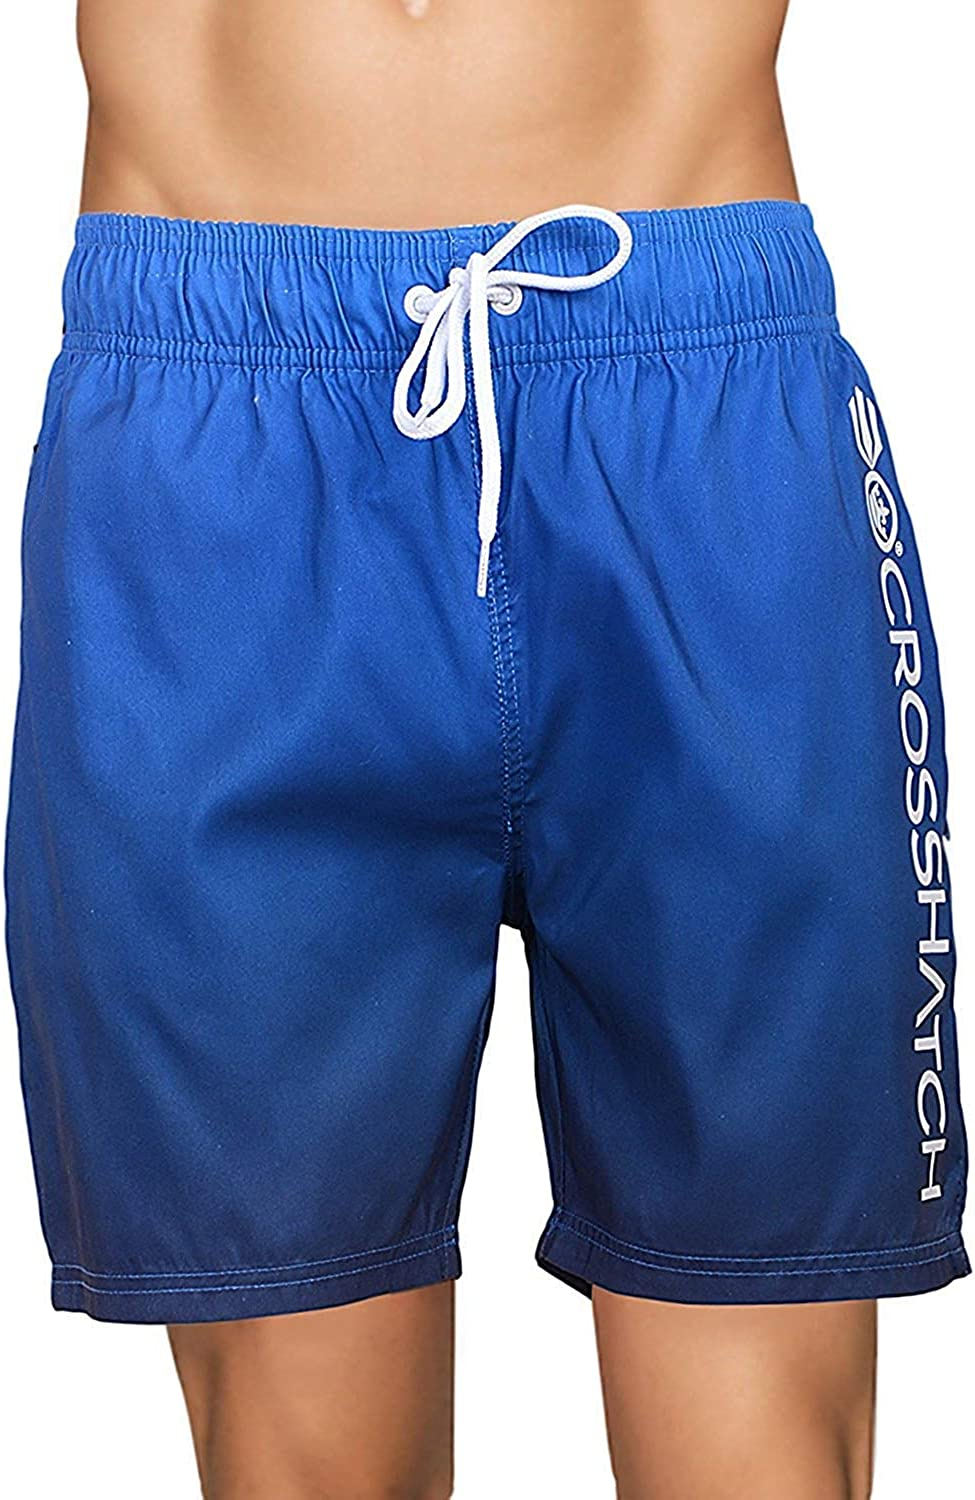 Crosshatch Mens Surf Board Trunks Beach Mesh Lined Swimming Shorts PACIFICSM